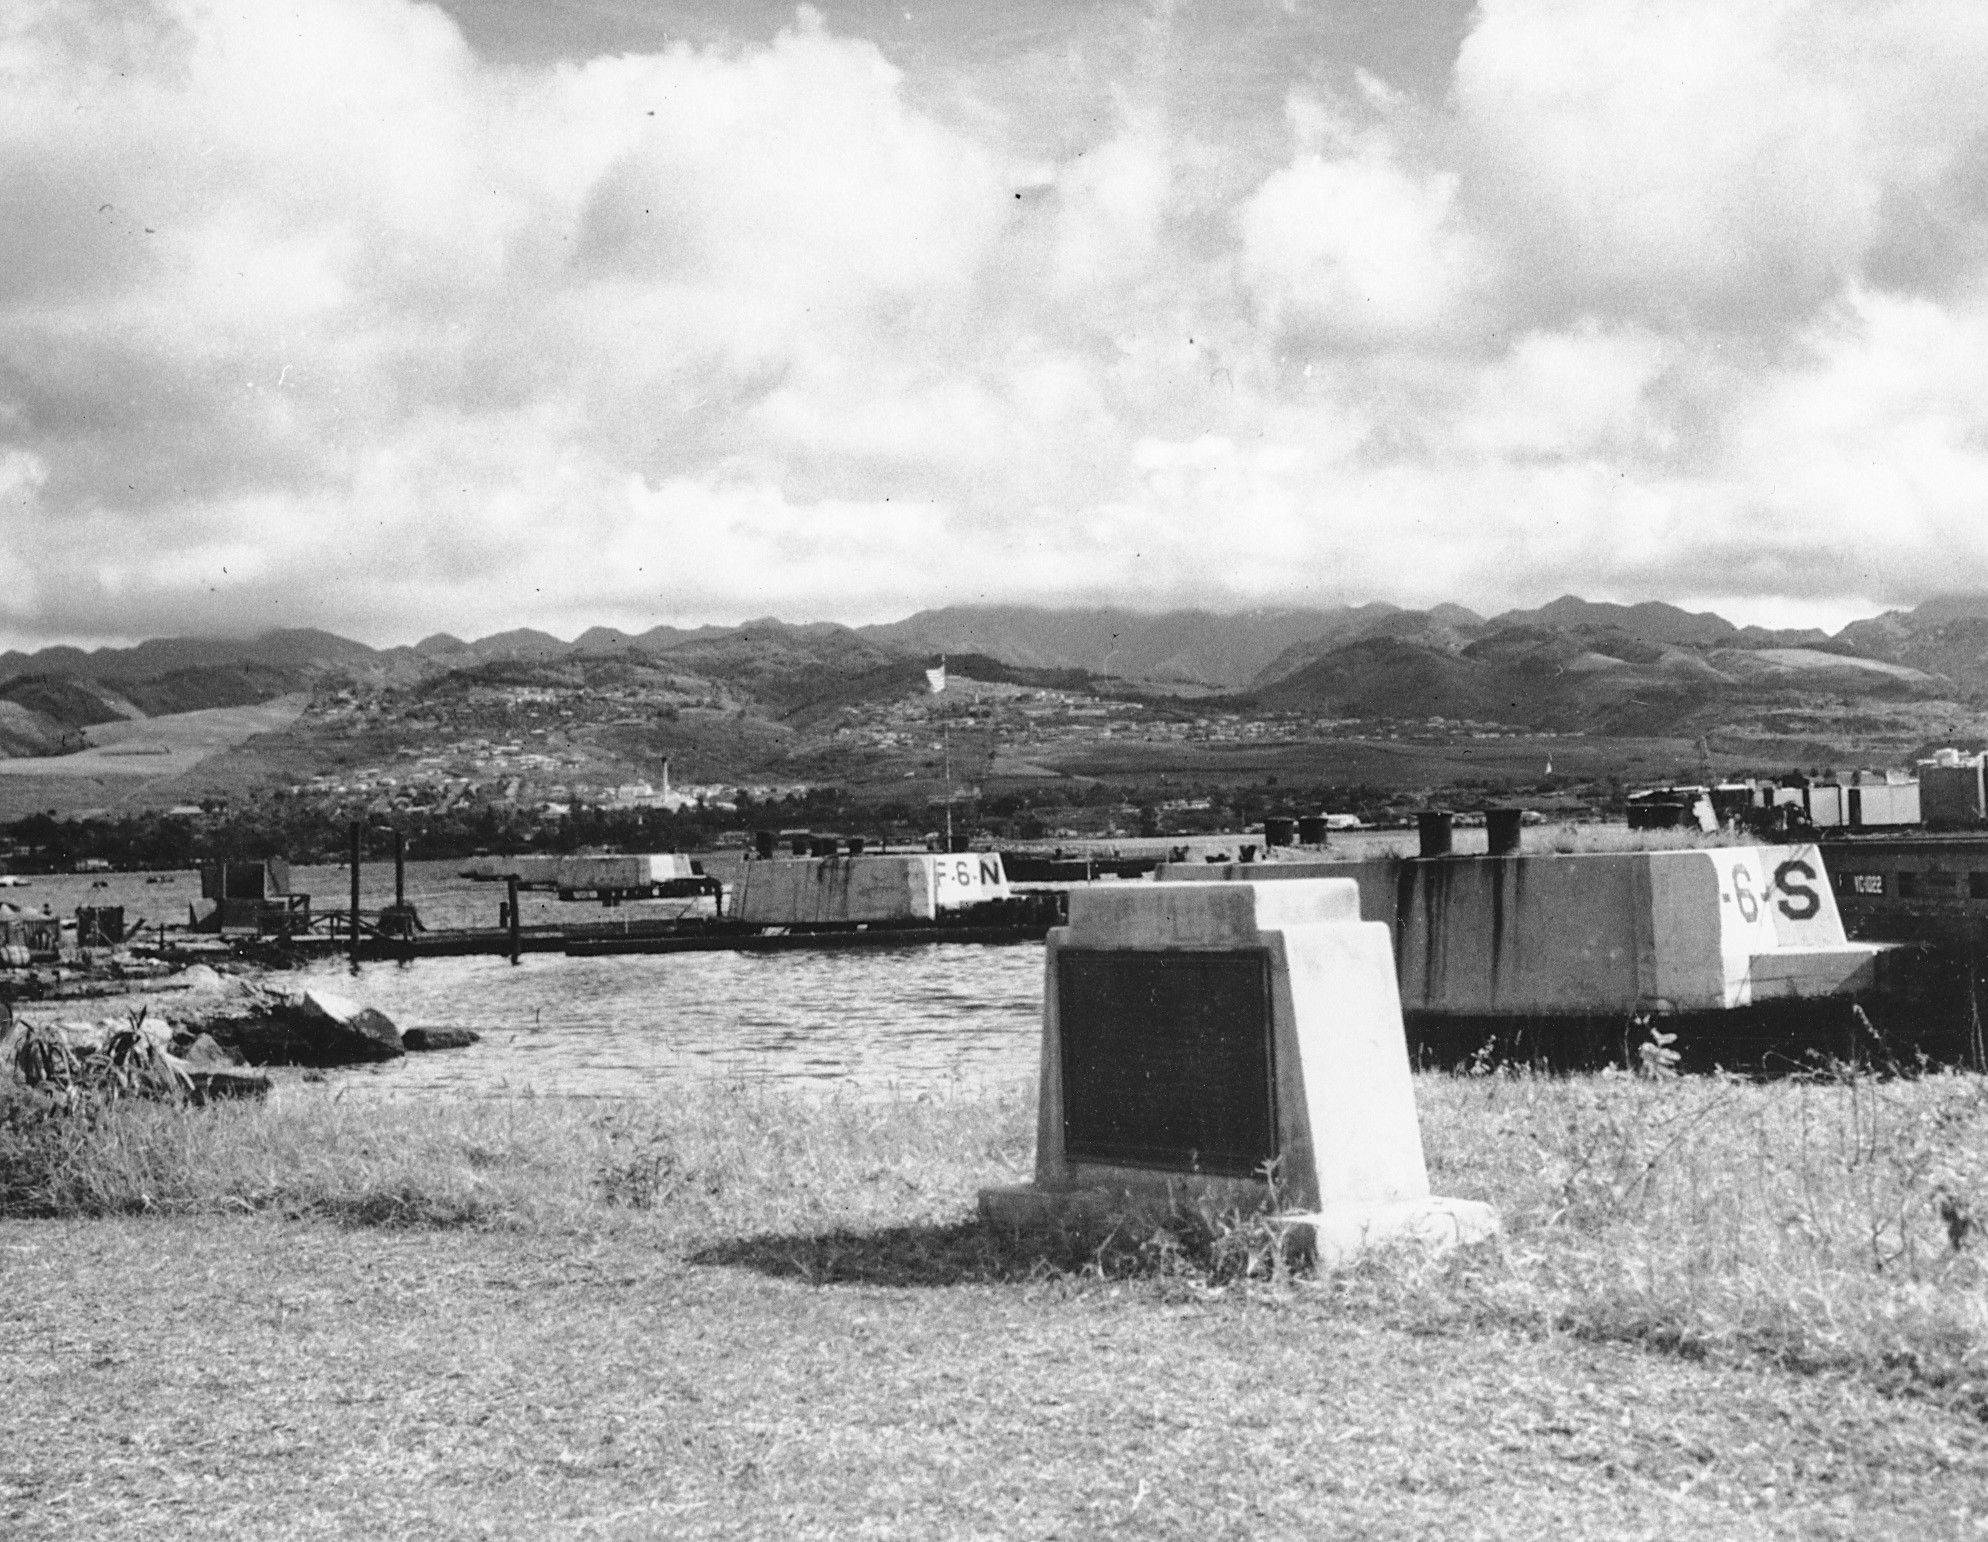 A small monument in memory of those killed in the Japanese attack on Pearl Harbor stands on Ford Island, in Pearl Harbor, Hawaii.